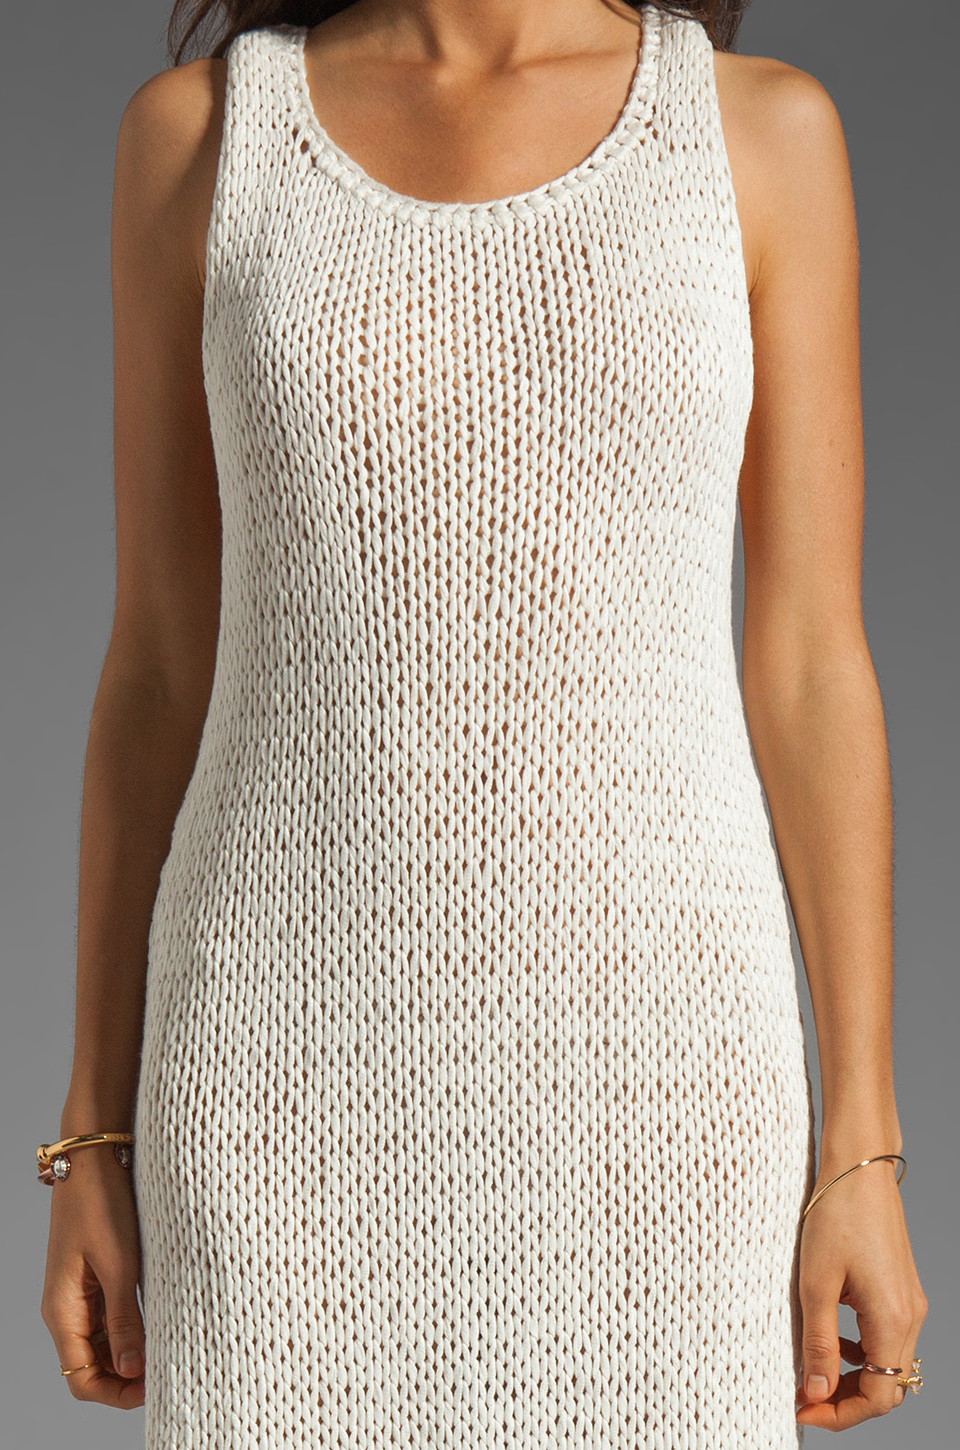 Basta Surf Percy T-Back Dress with Reflector Accents in White